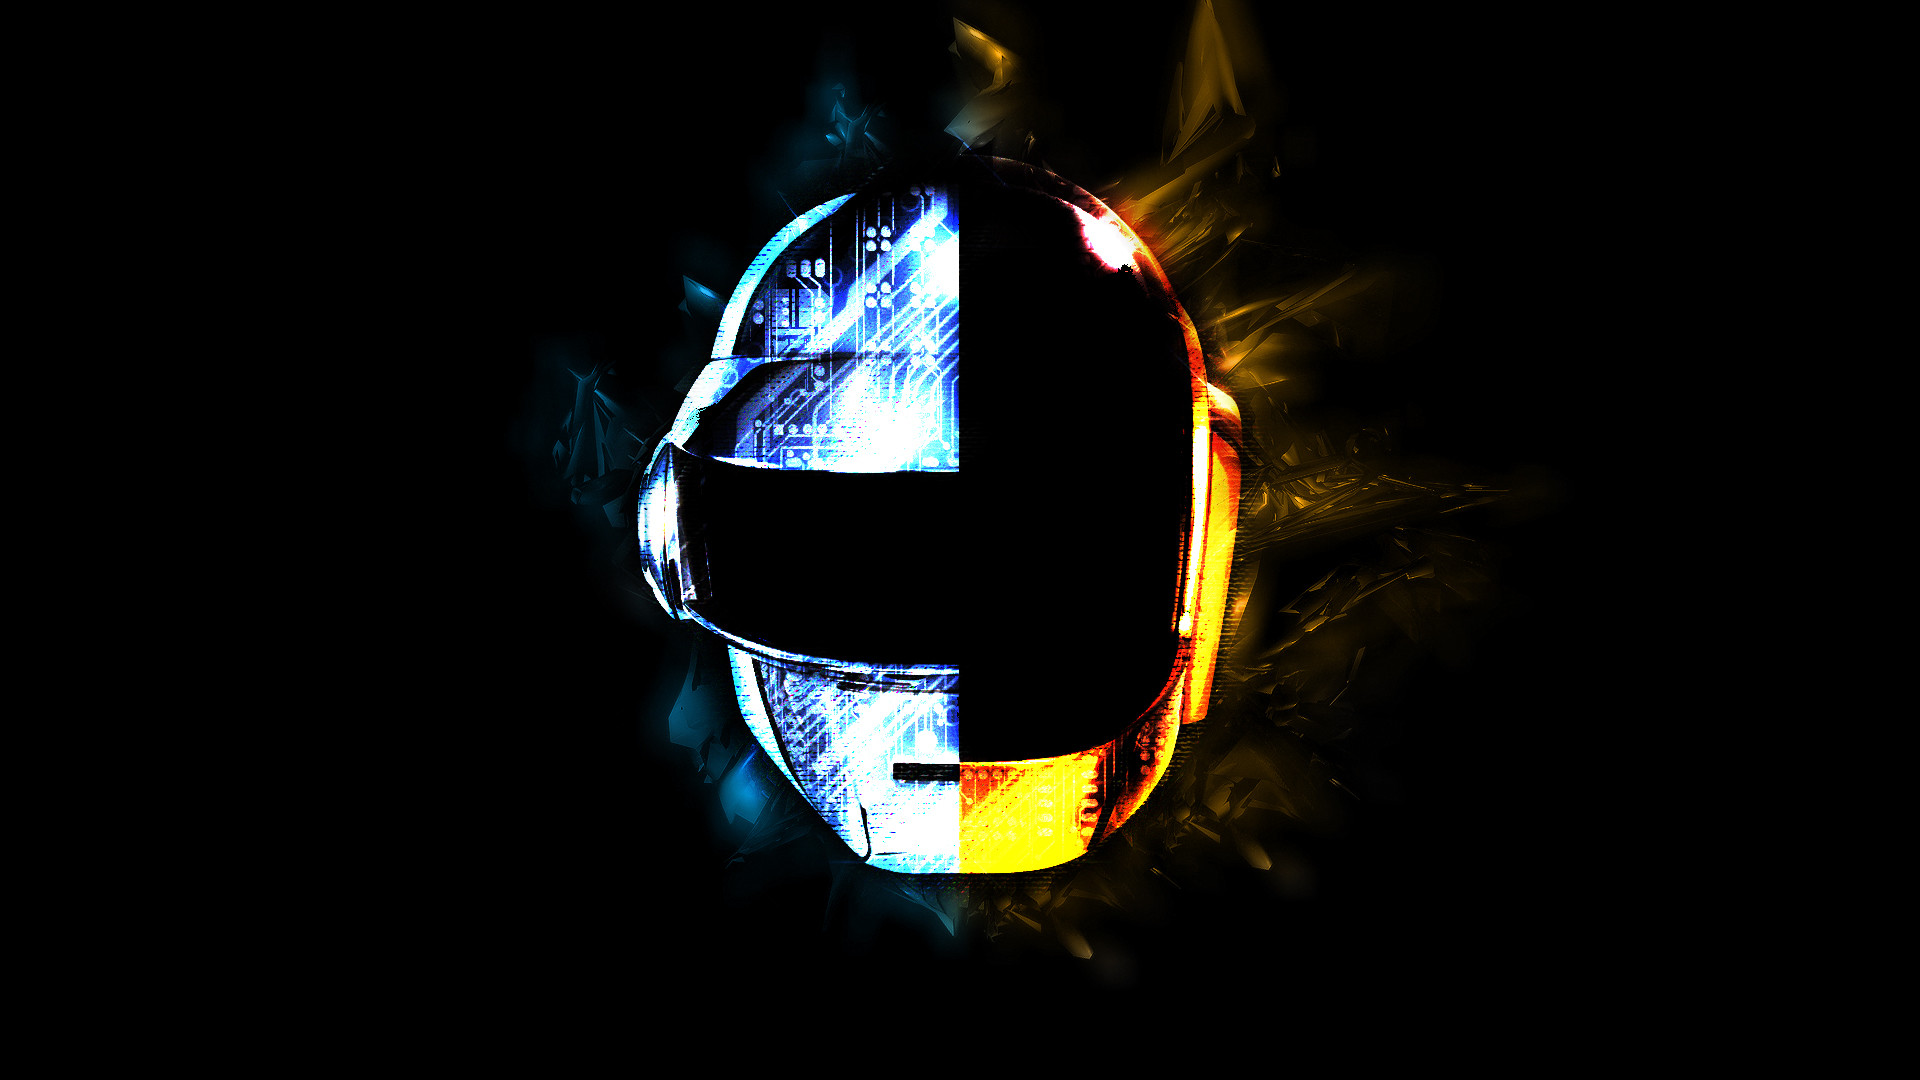 Daft Punk Backgrounds (69+ images)